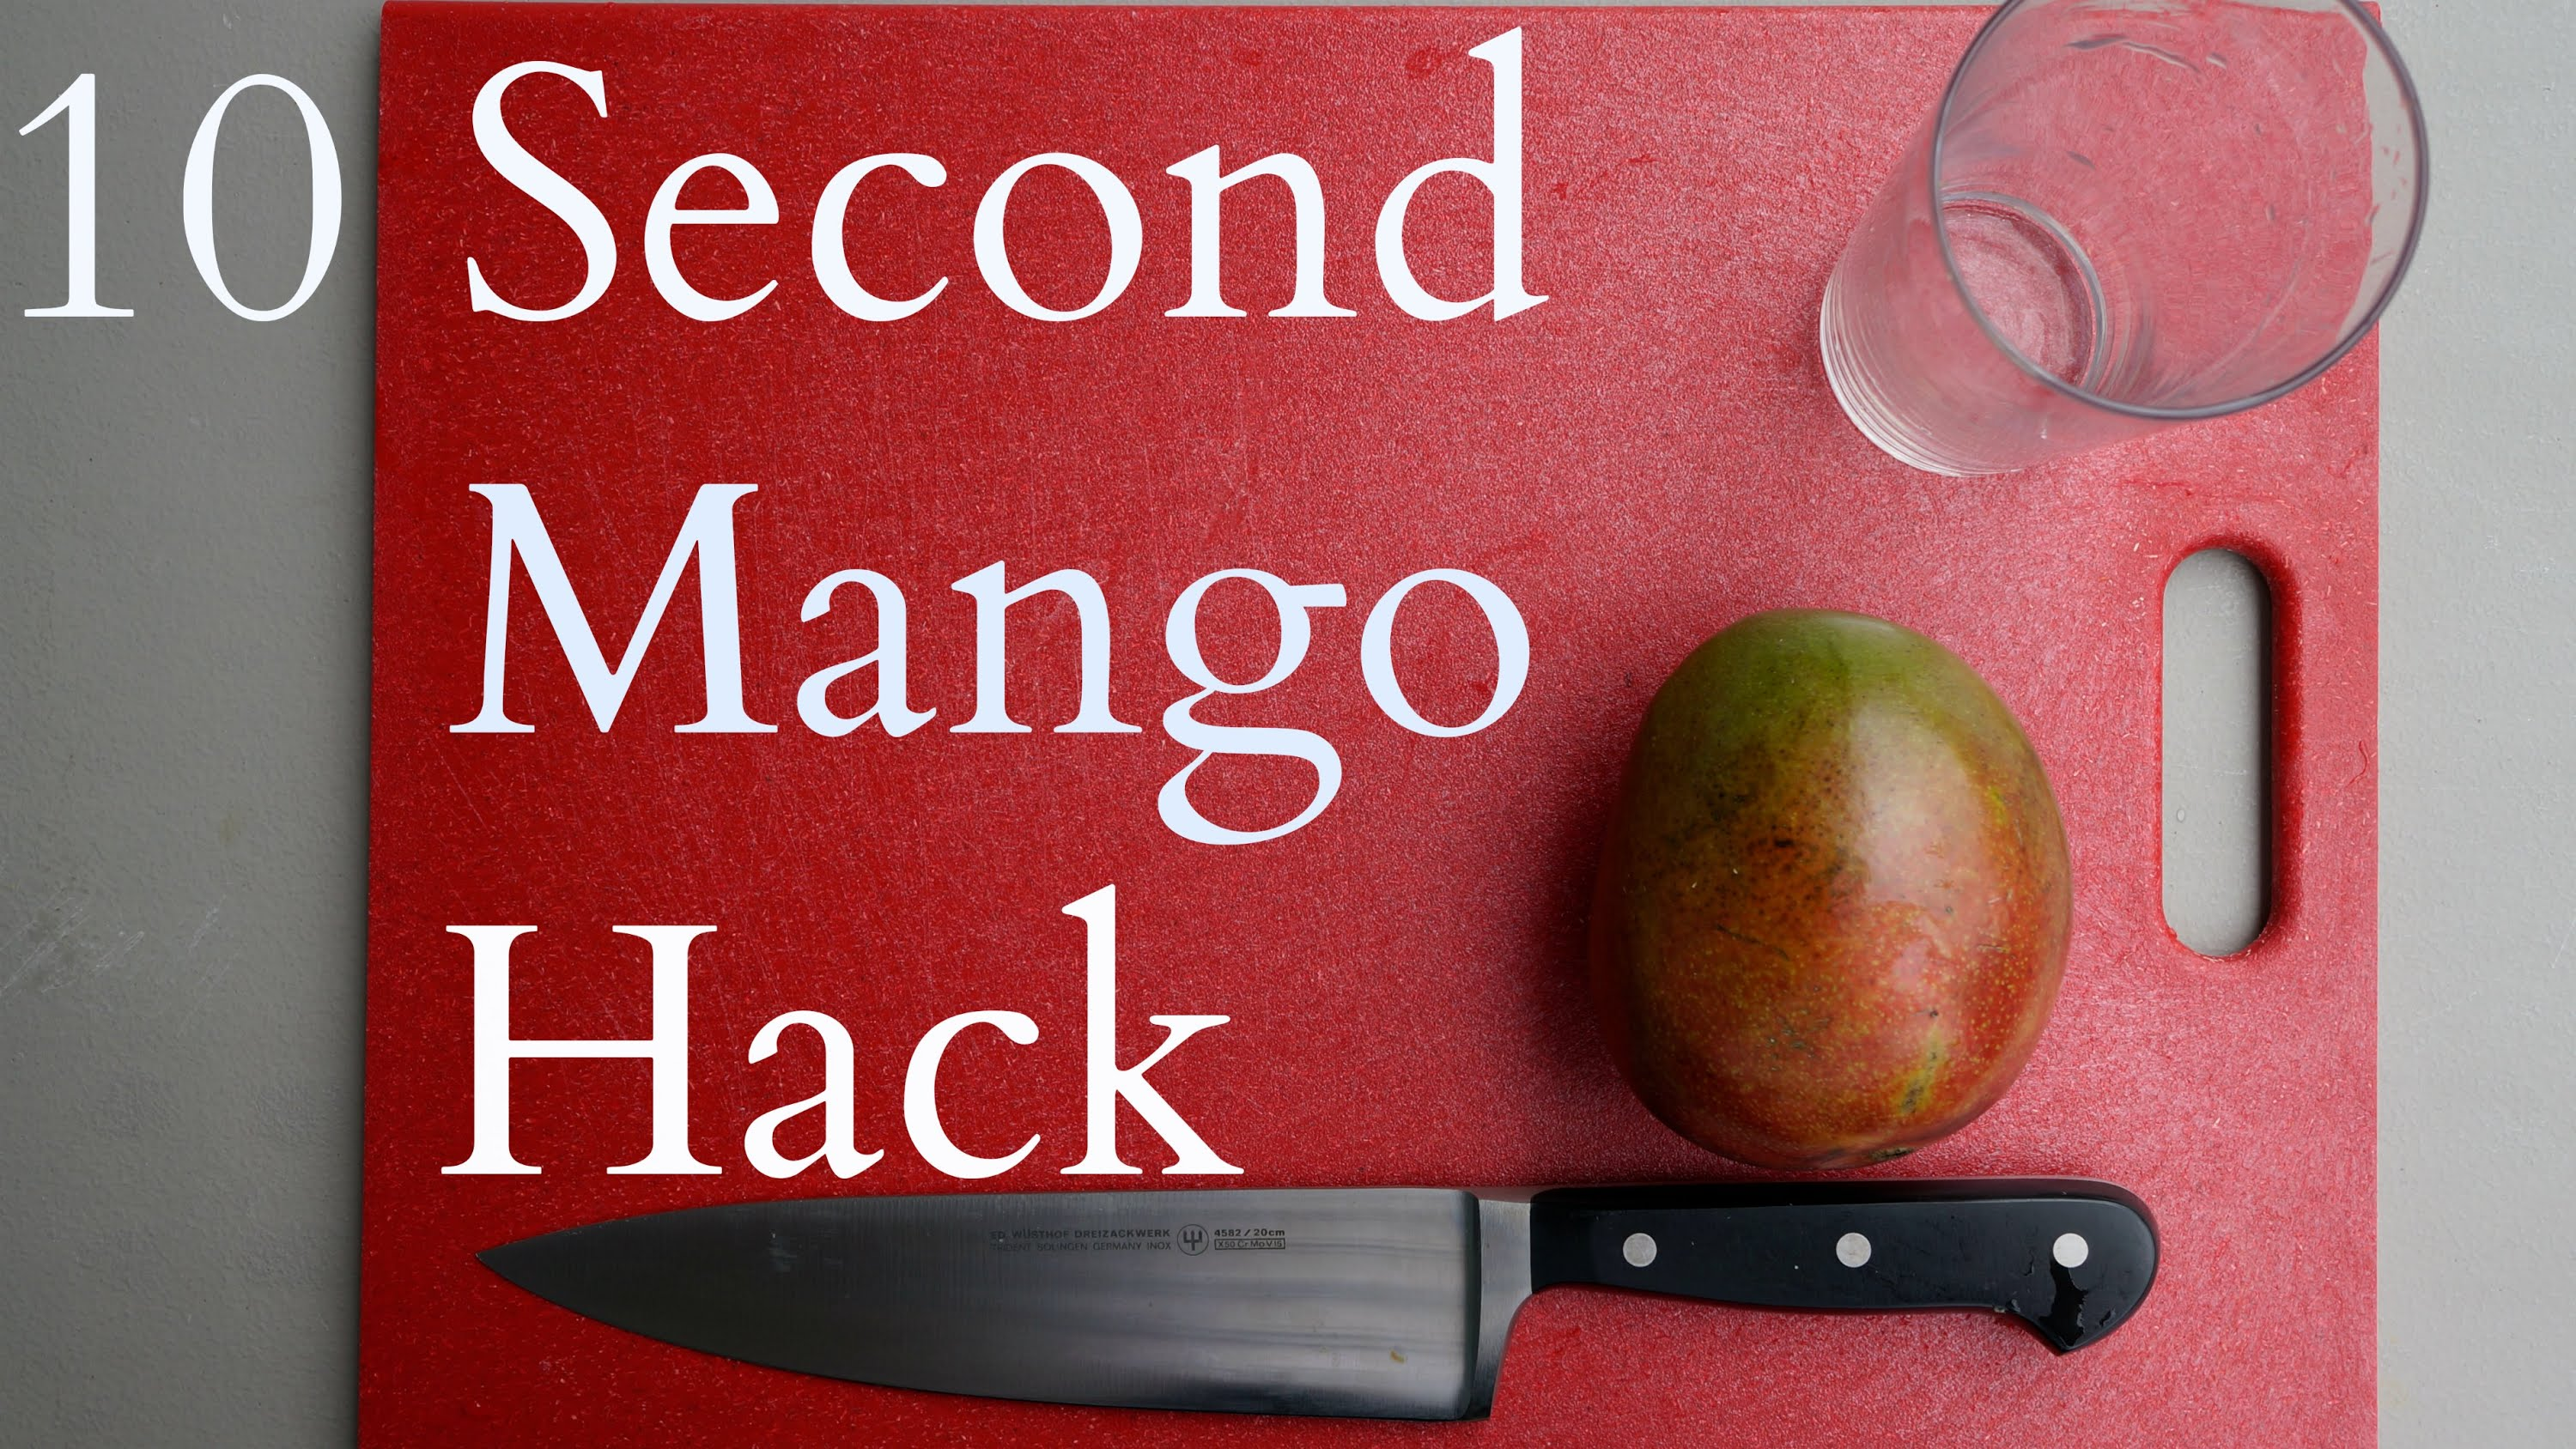 「這樣做,十秒就讓芒果光溜溜!」- Fastest Way to Skin a Mango: 10 Sec Mango Hack